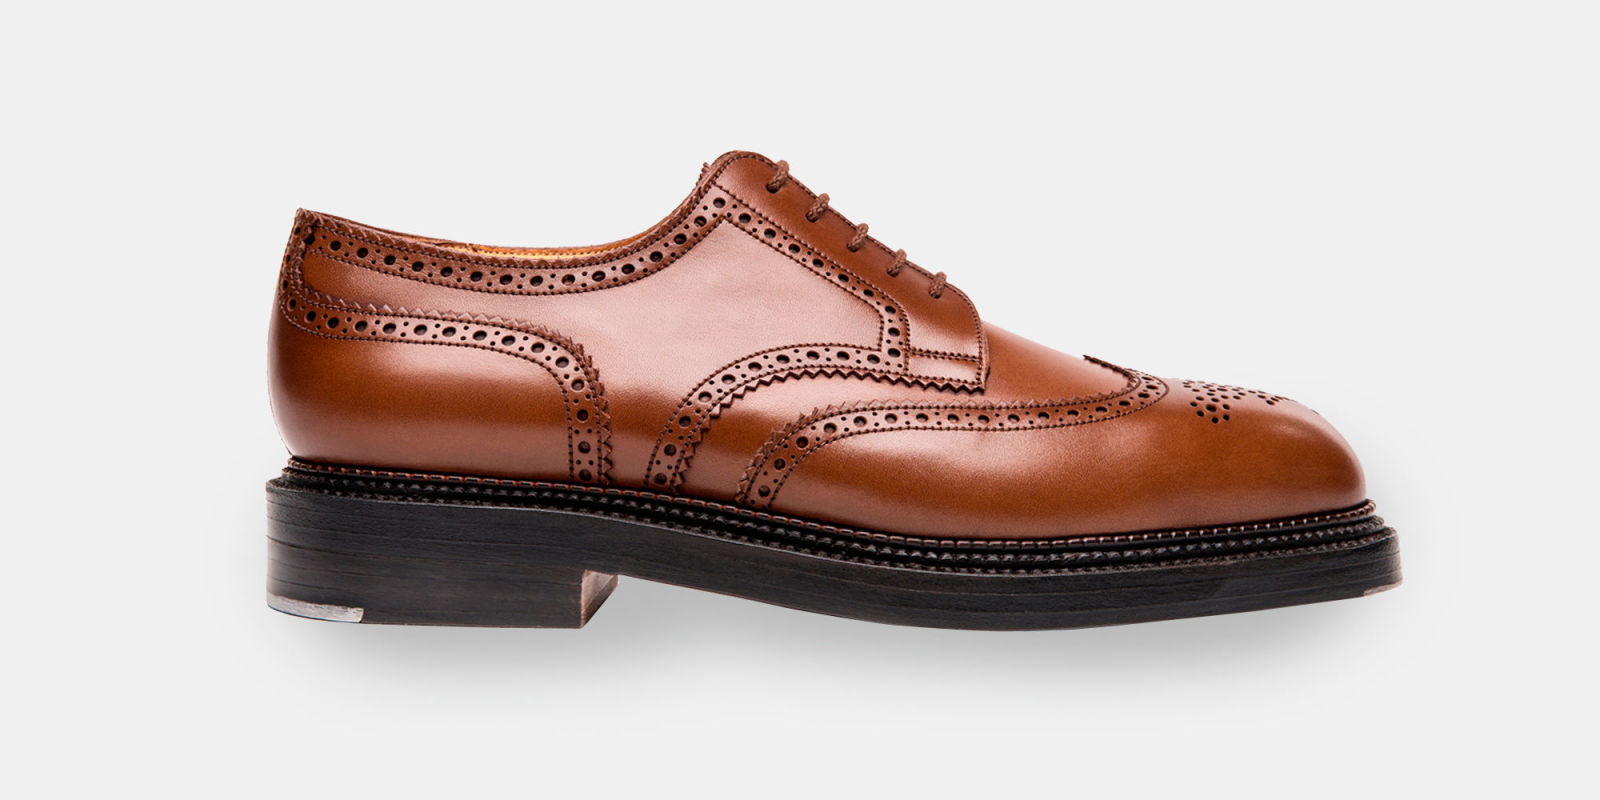 santoni shoes review